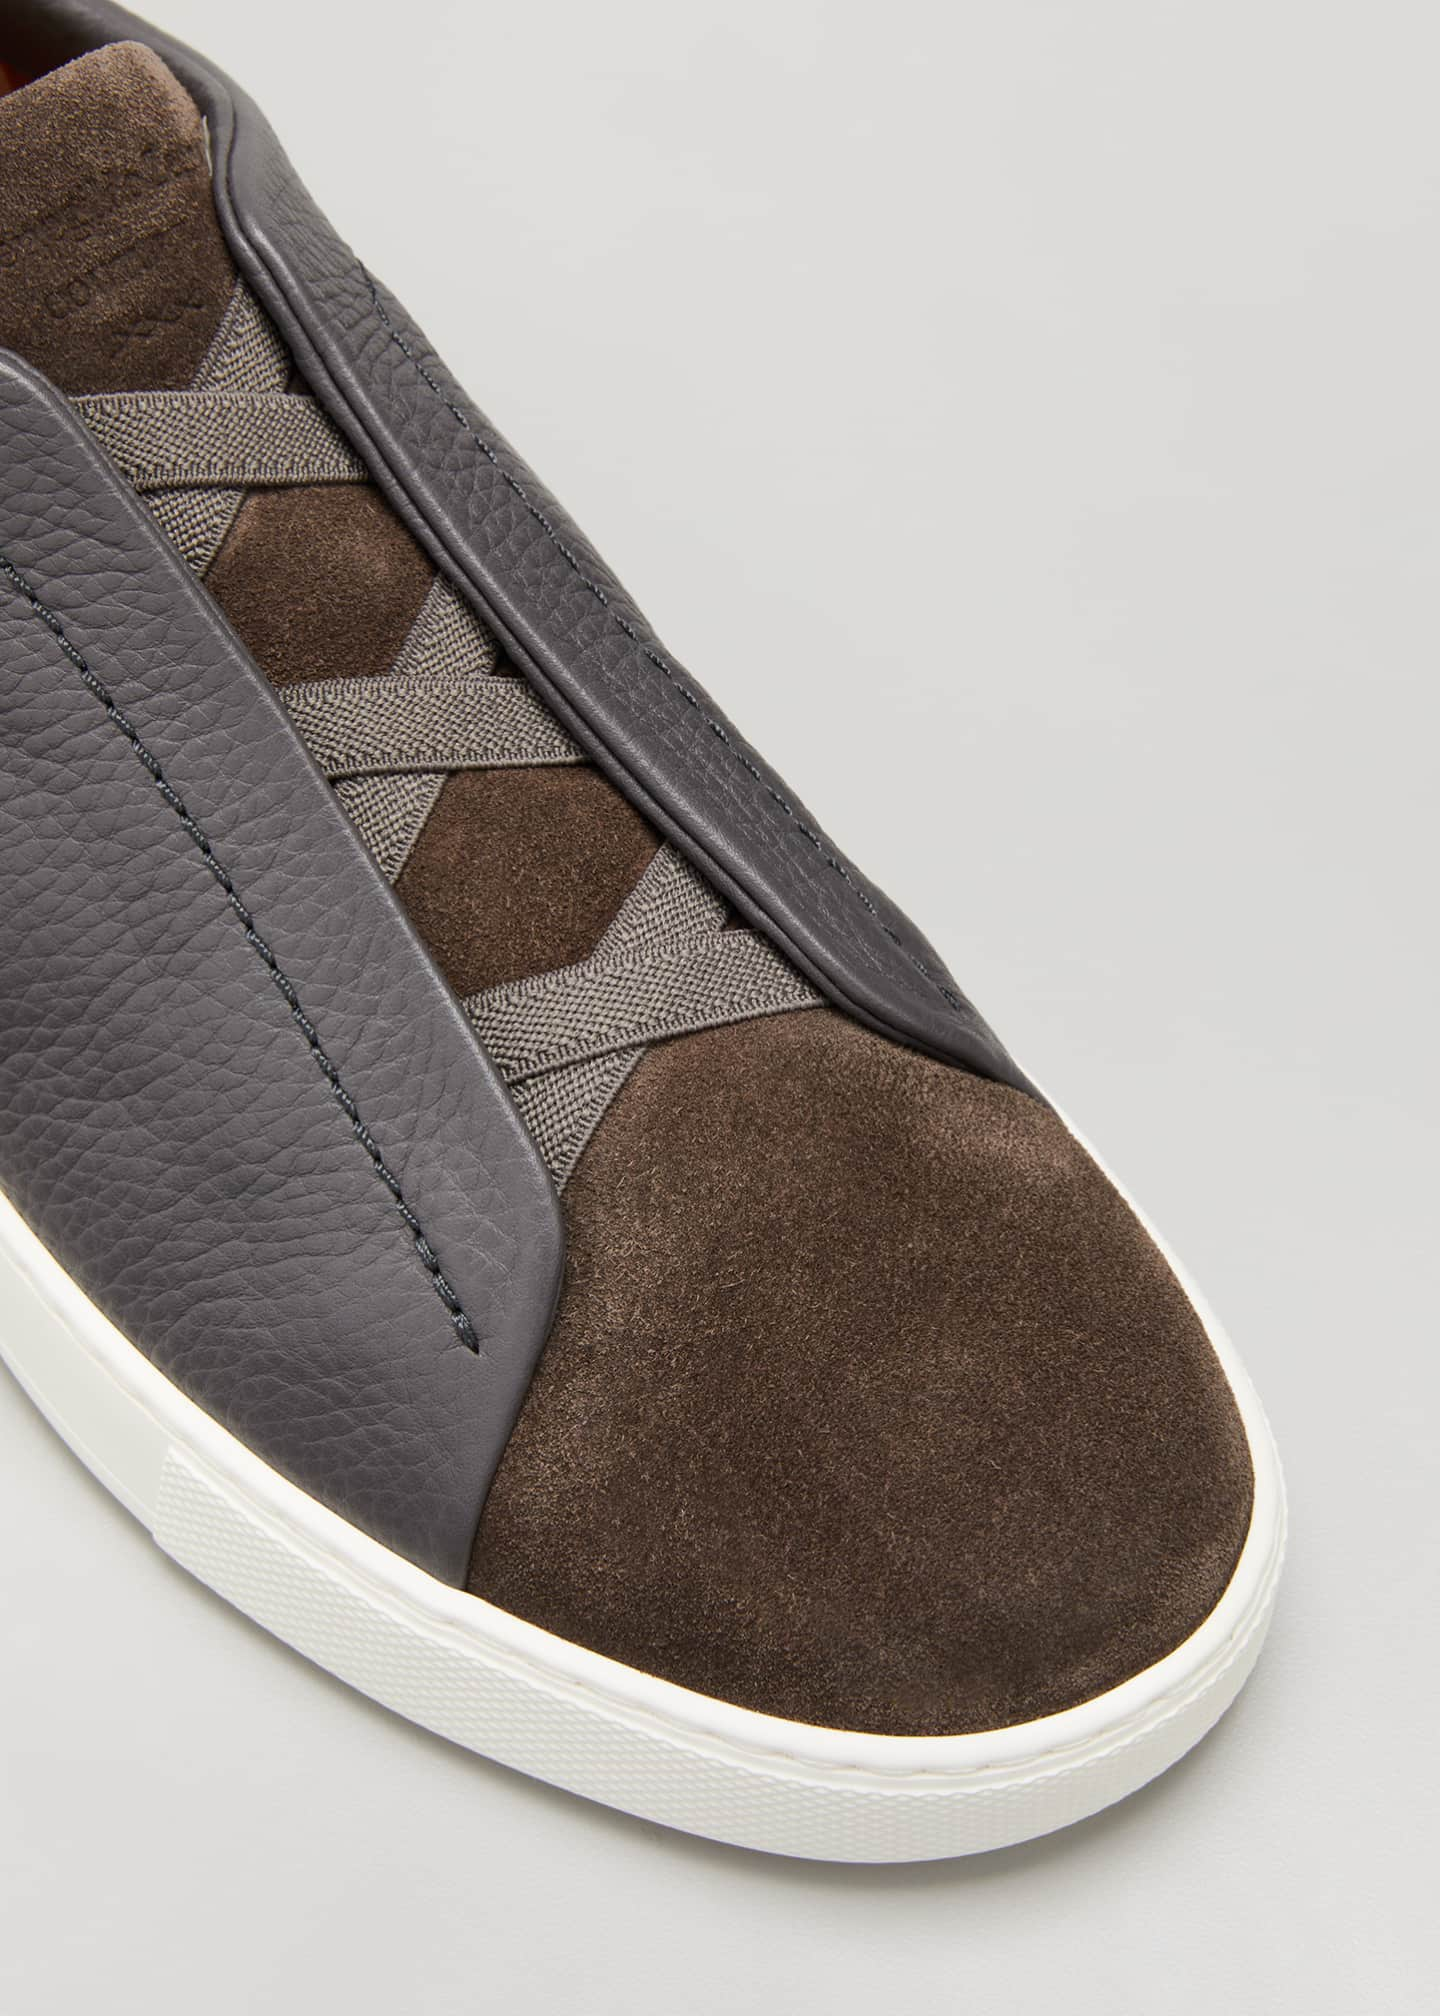 Image 3 of 3: Men's Triple-Stitch Mix-Leather Slip-On Sneakers